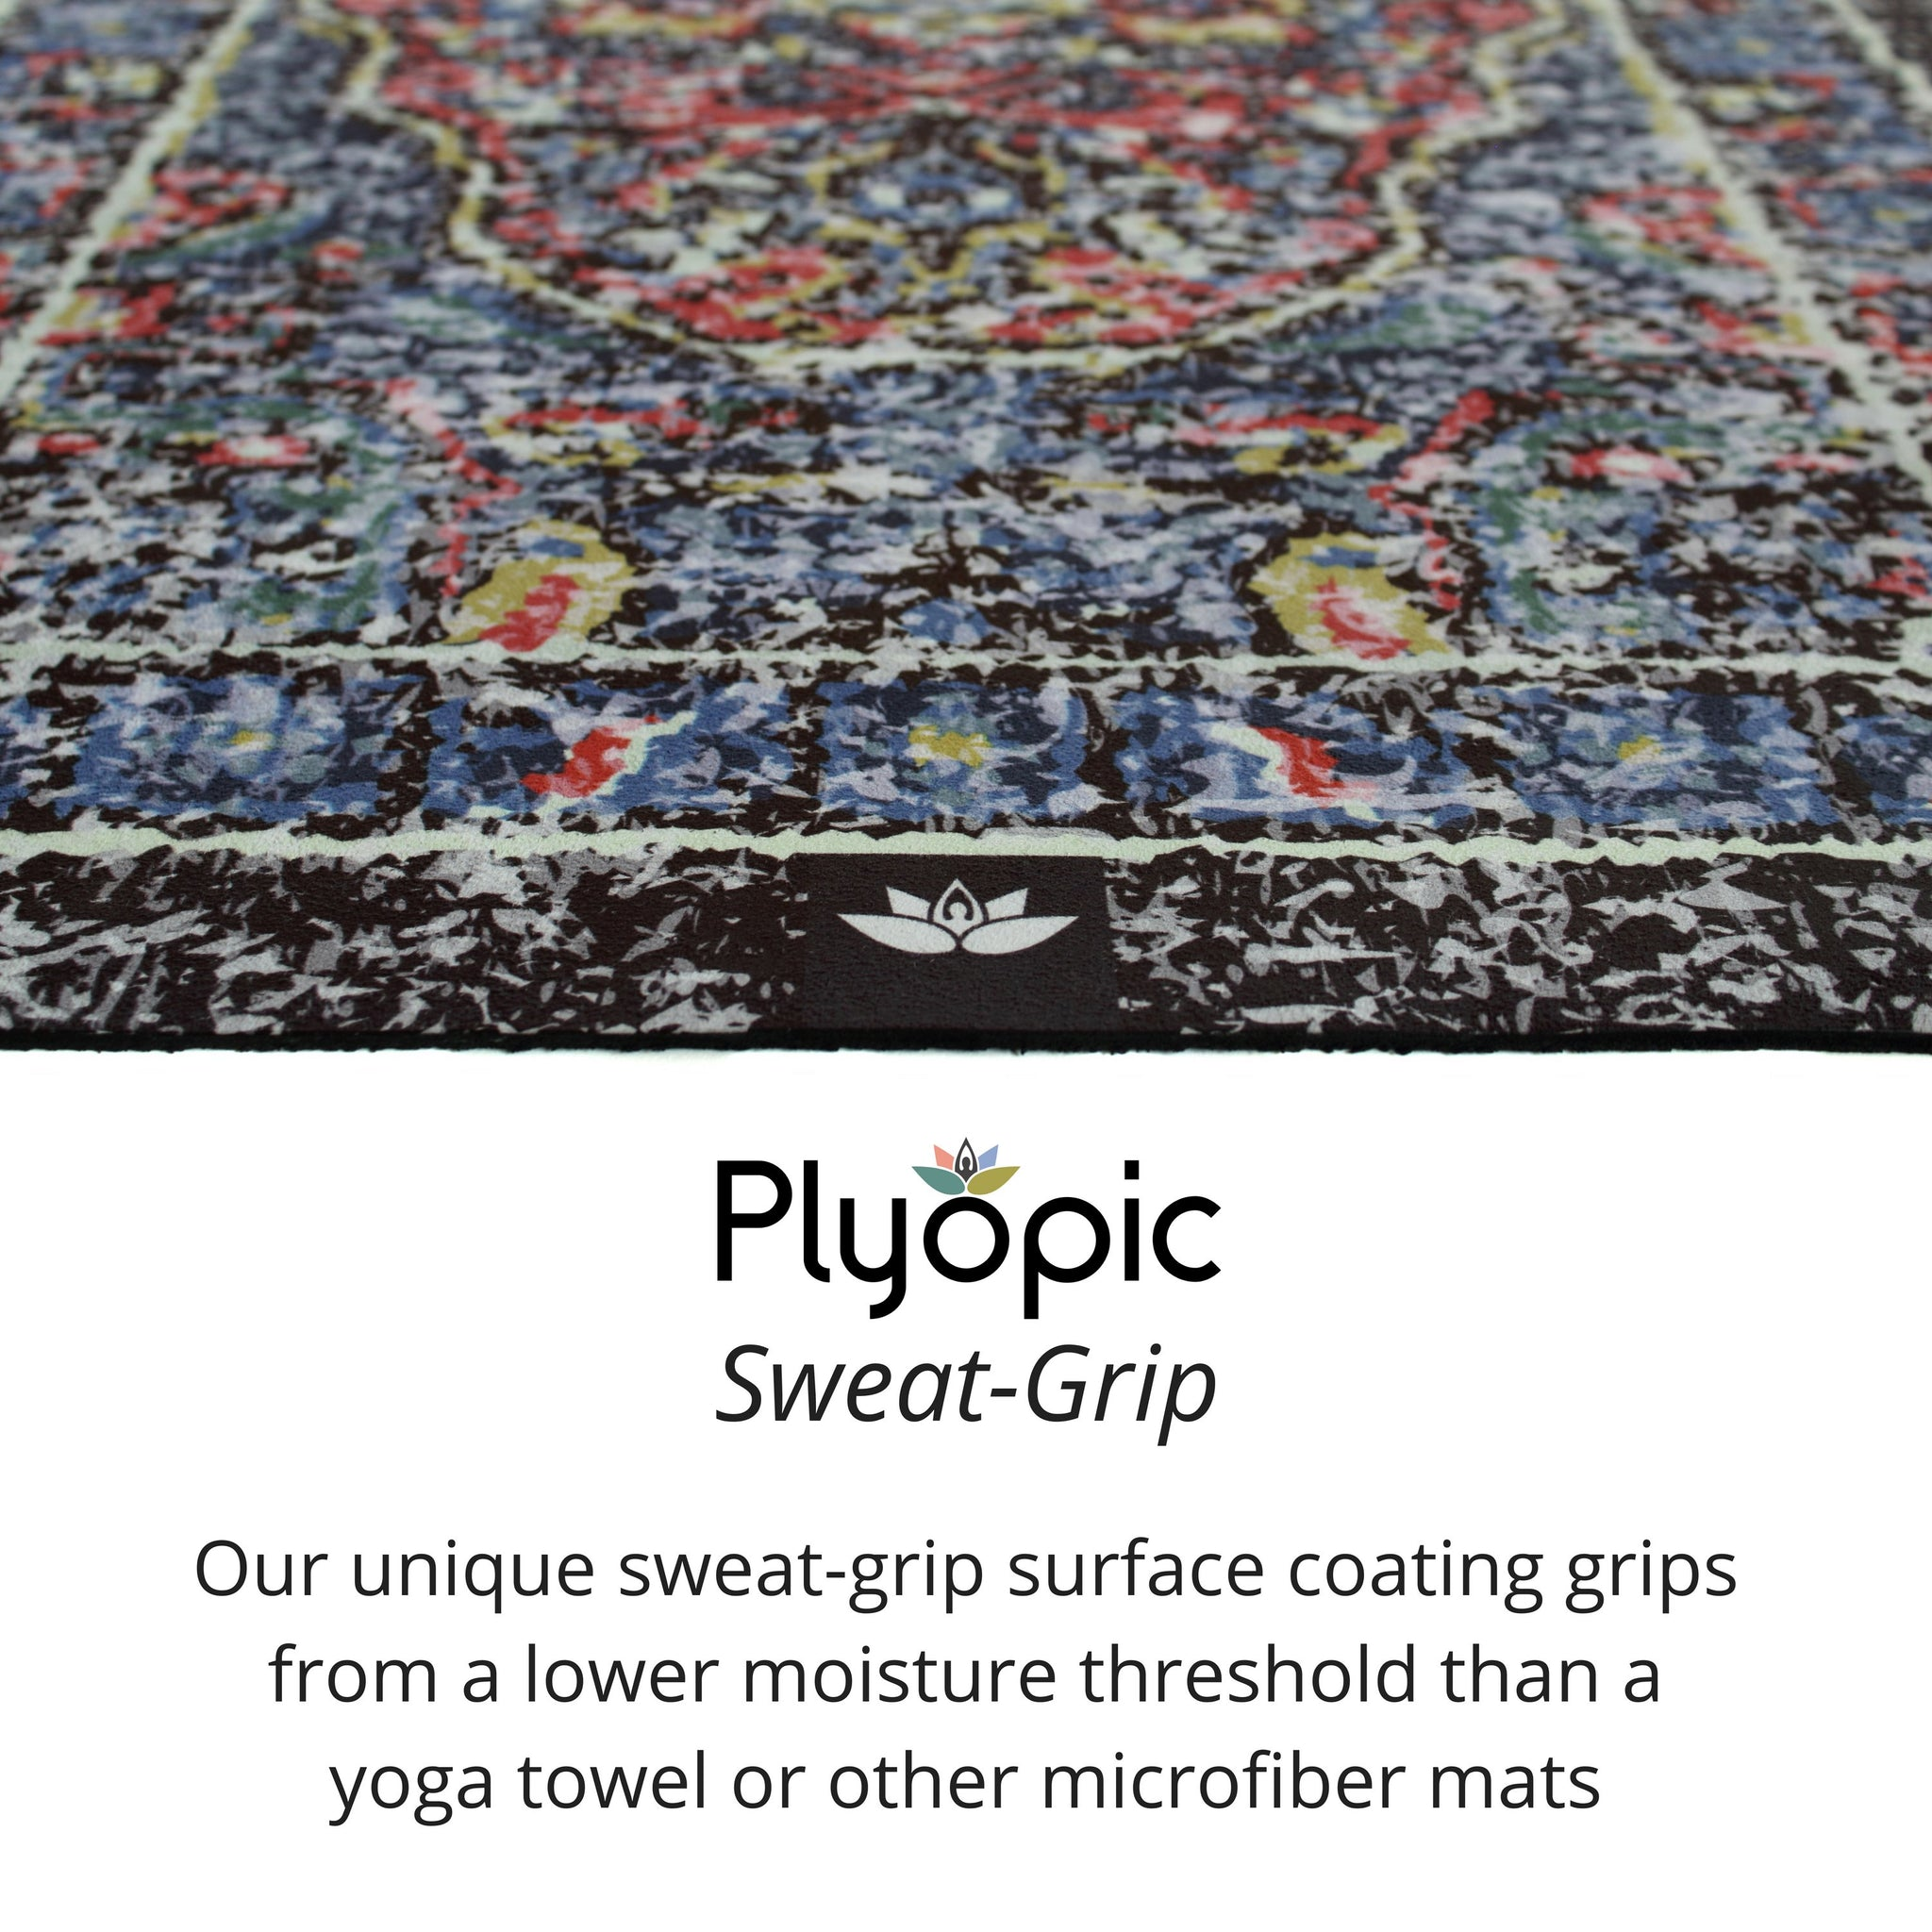 Plyopic-All In One Yoga Mat Persia-Yoga Mat